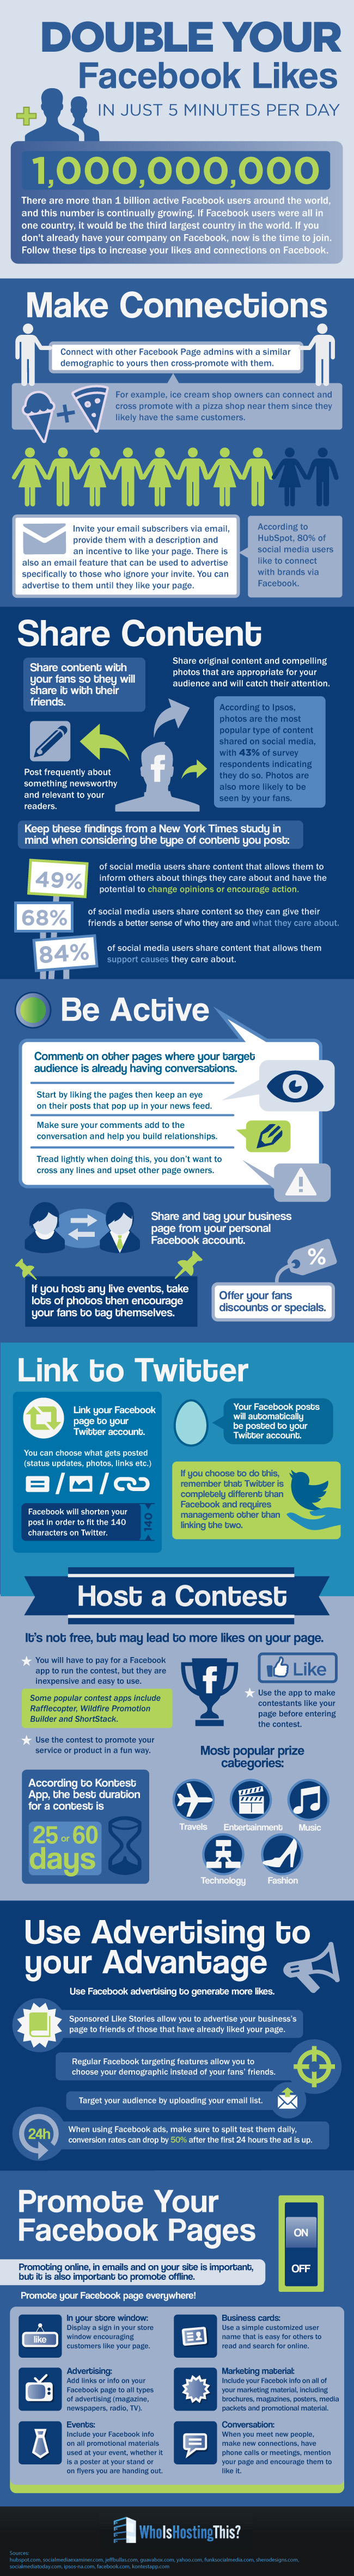 10 Tips to to Double Your Facebook Likes